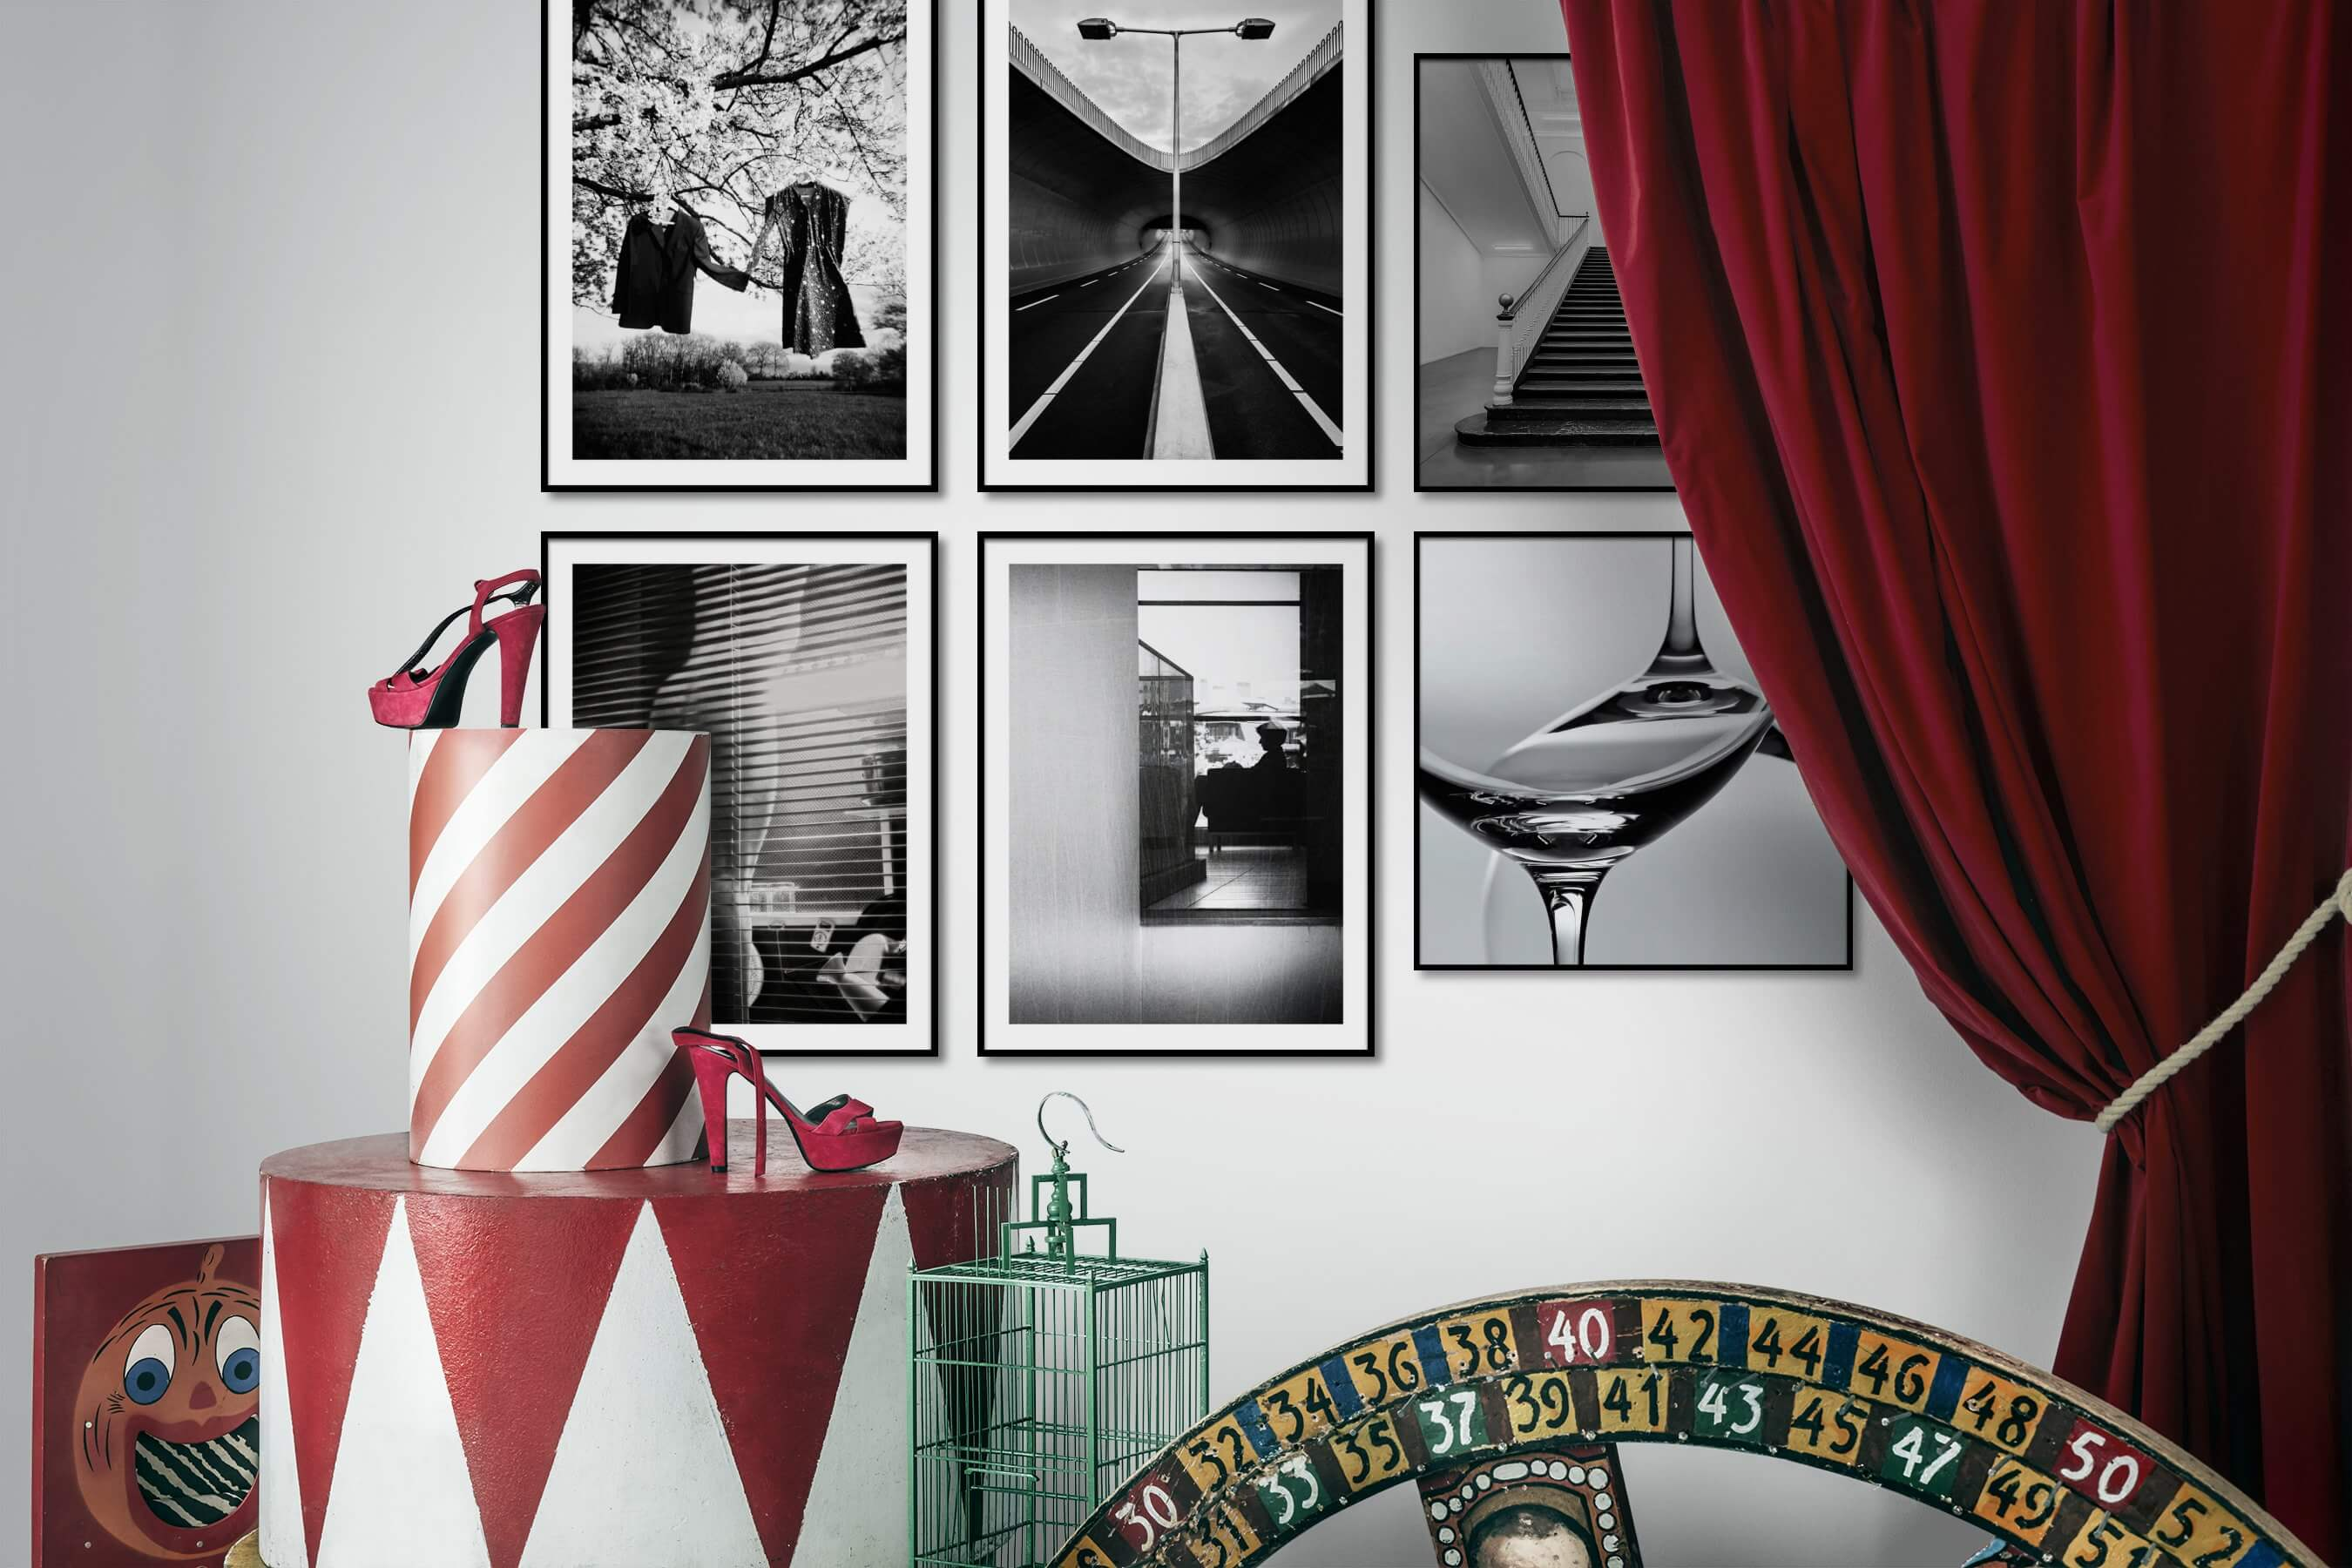 Gallery wall idea with six framed pictures arranged on a wall depicting Artsy, Black & White, Country Life, For the Moderate, City Life, and For the Minimalist